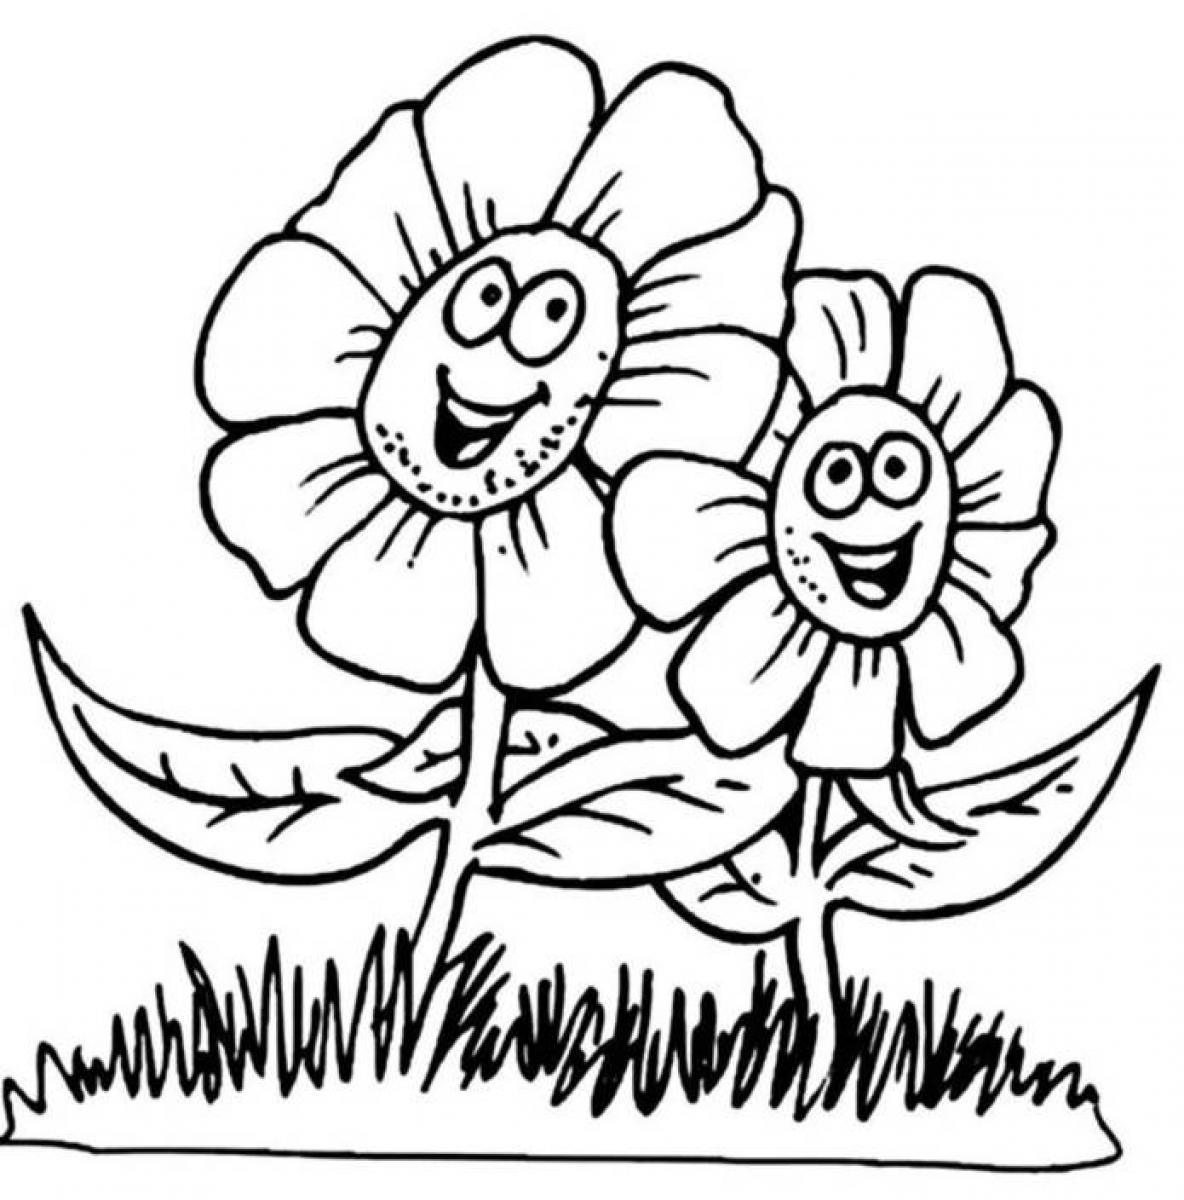 Flower coloring pages for kids - Coloring Pages For Big Flowers Atkinson Flowers